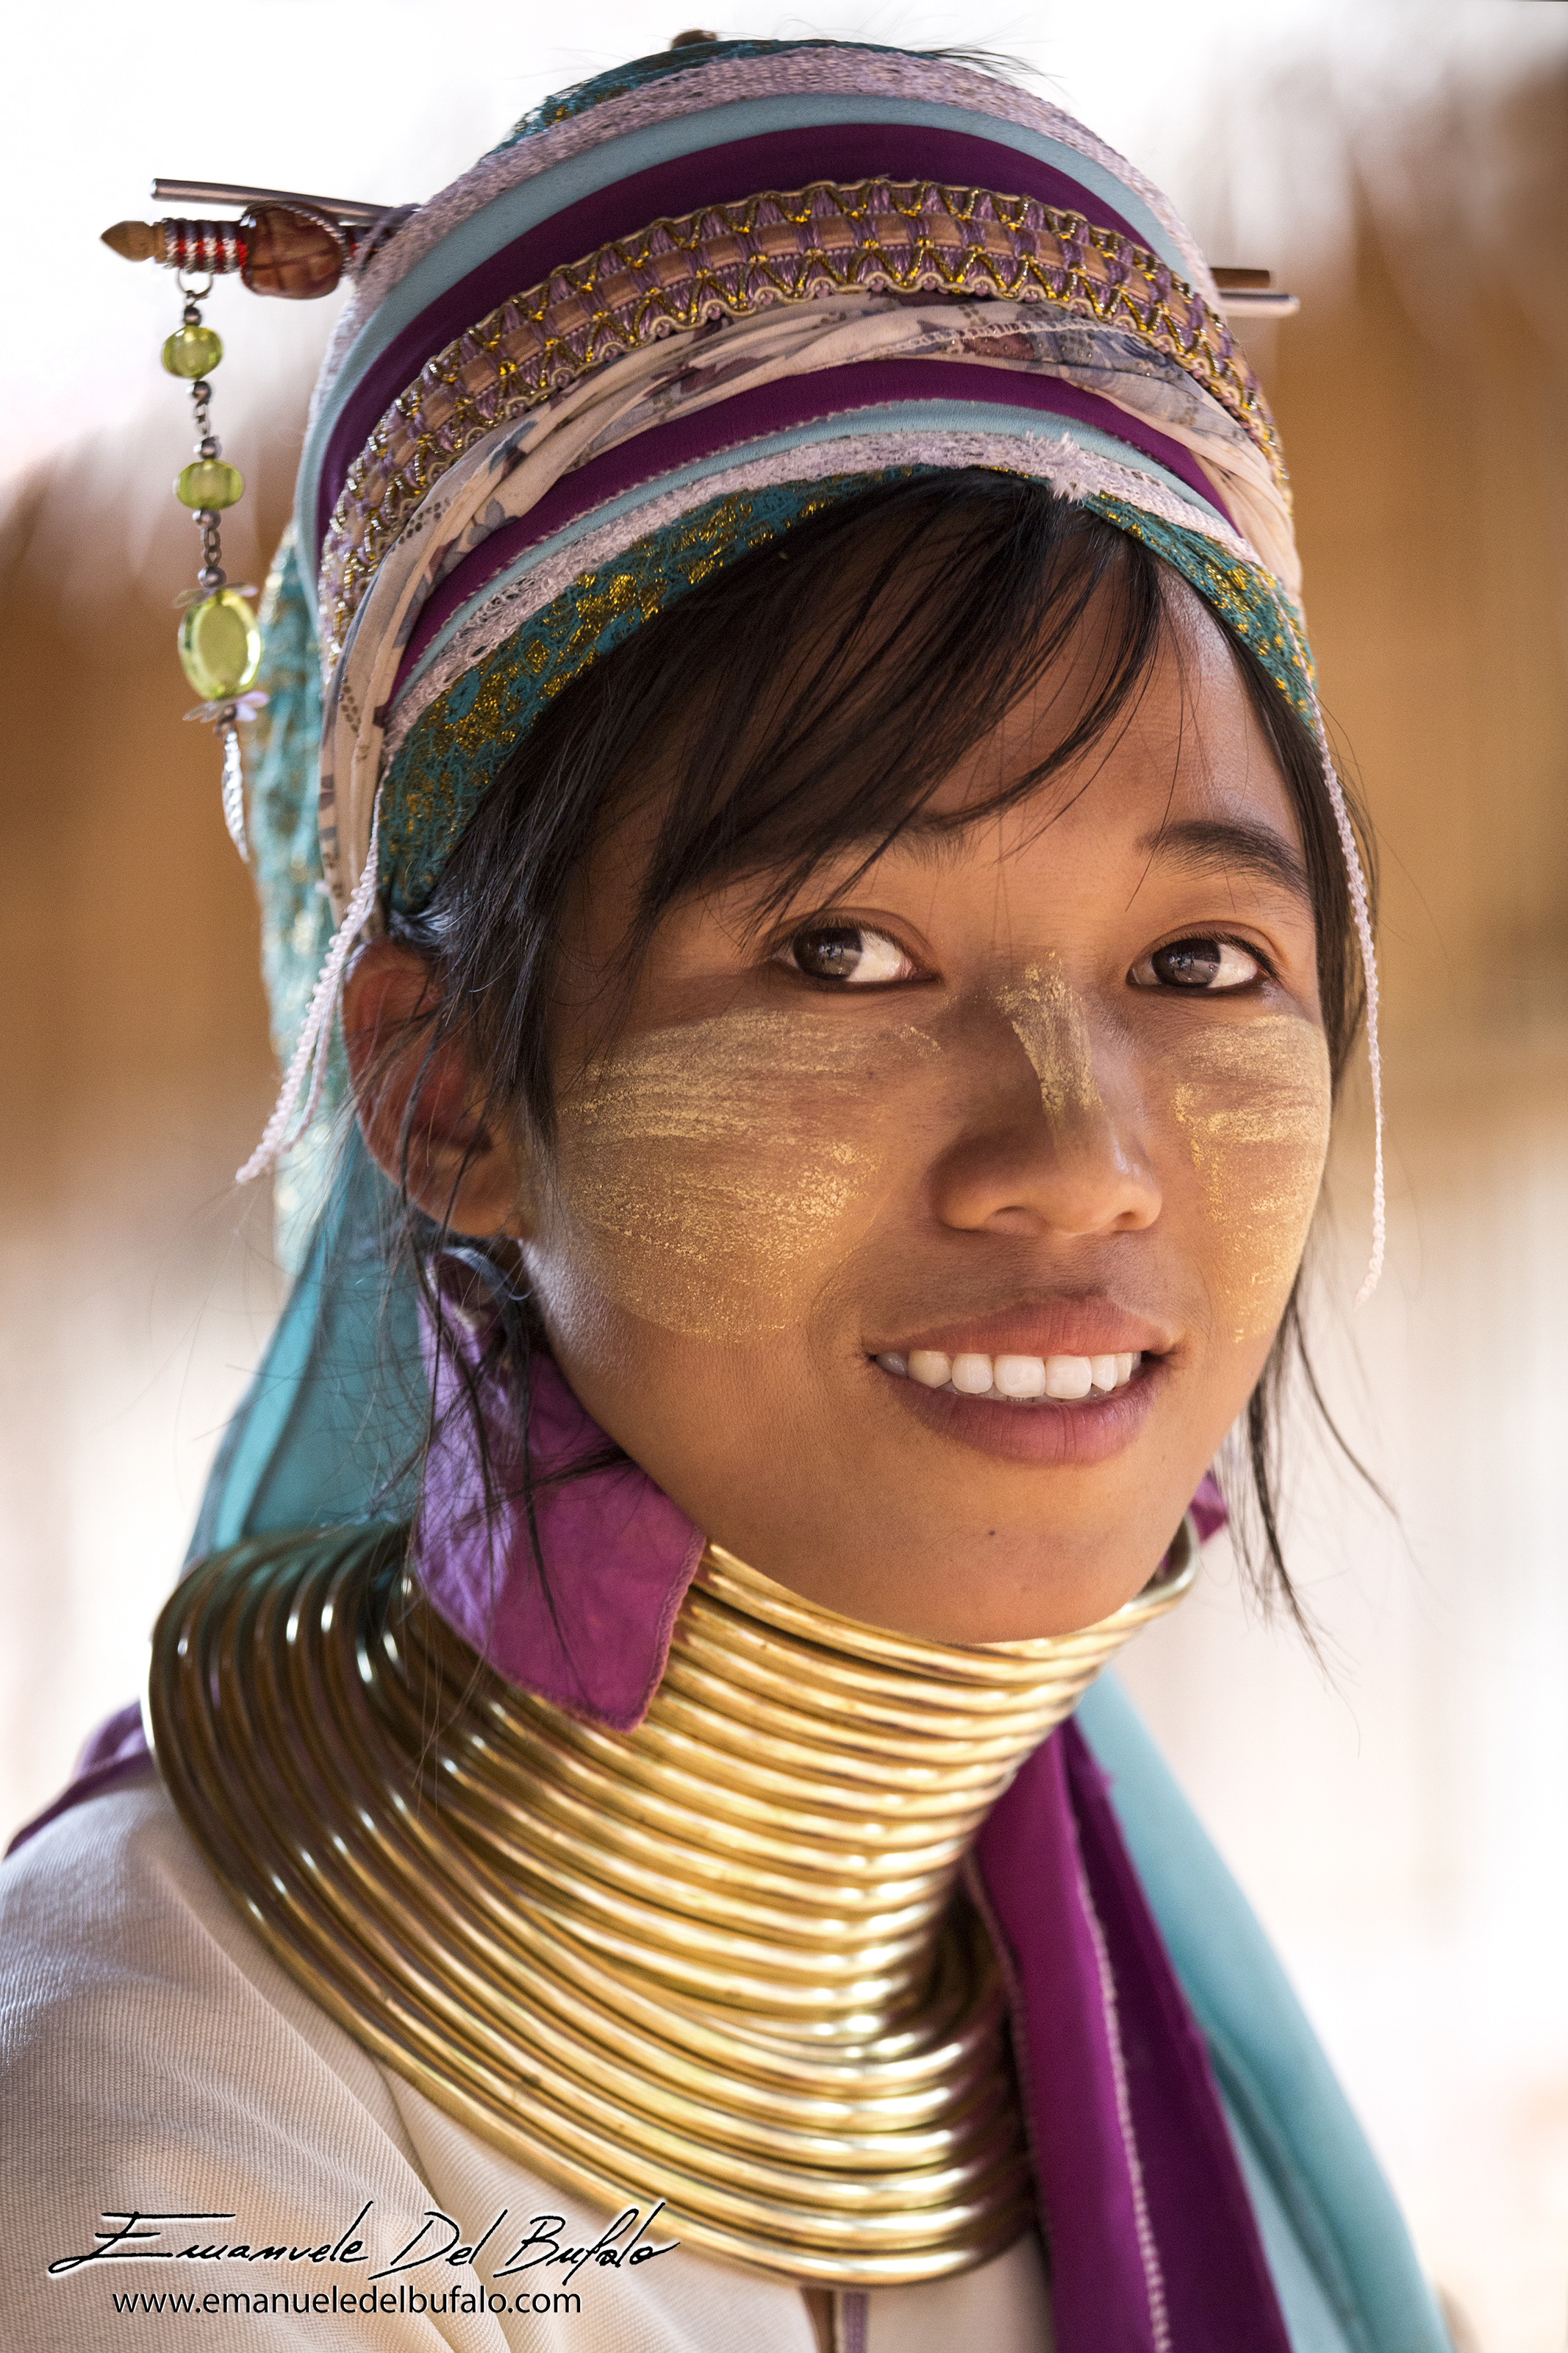 www.emanueledelbufalo.com #thailand #chiang_rai #asia #people #karen #village #long_neck #girl